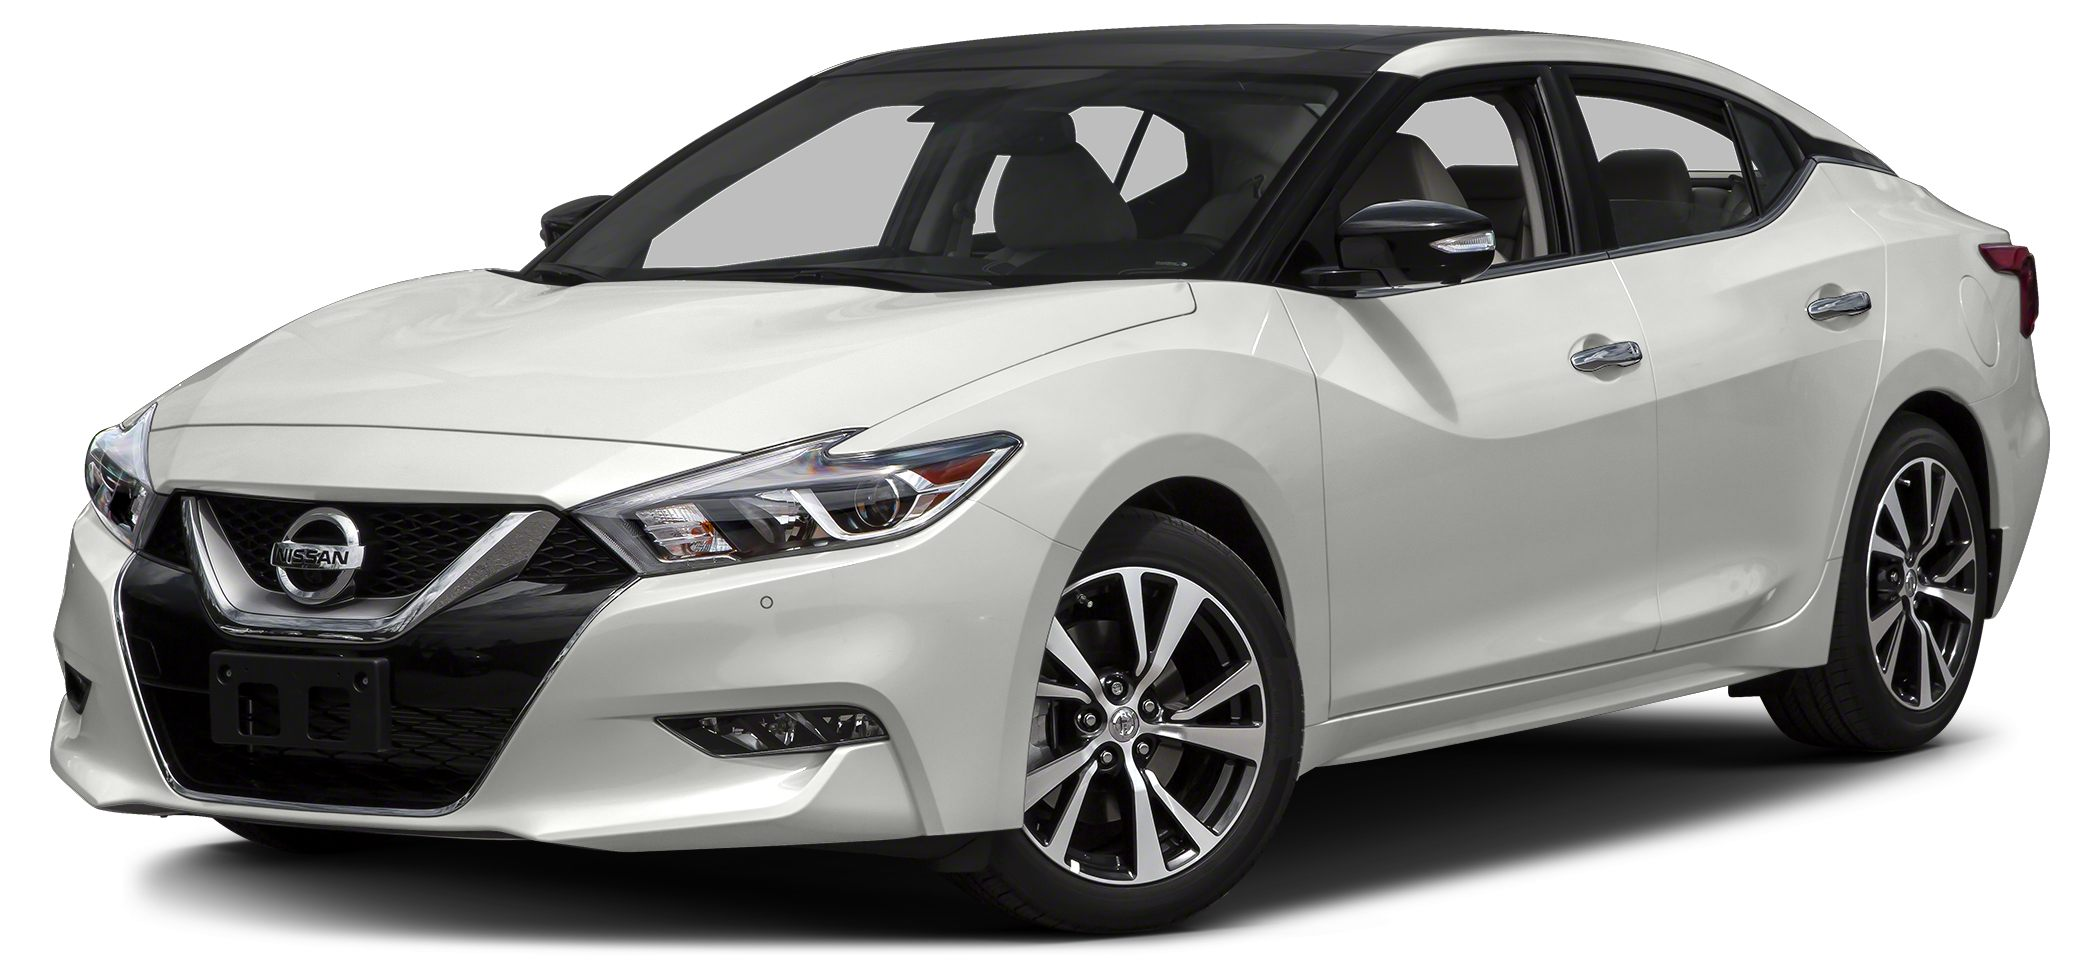 2017 Nissan Maxima 35 Platinum Miles 10Color Pearl White Stock 7170427 VIN 1N4AA6AP7HC40881